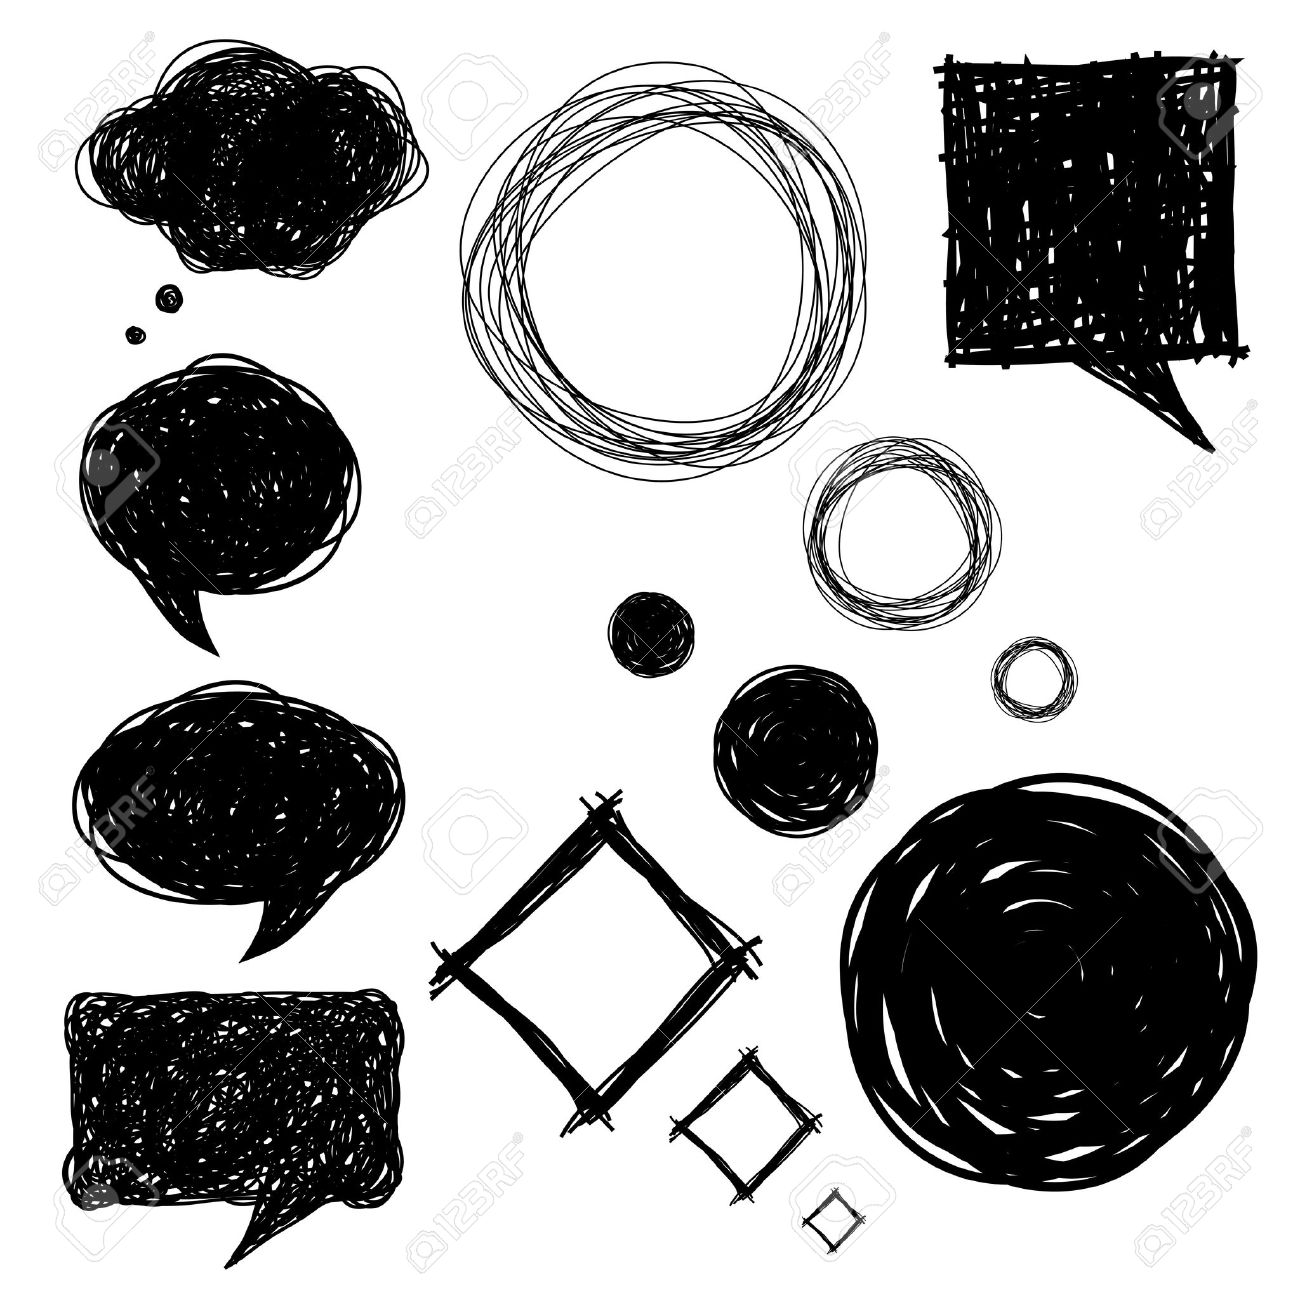 set of hand drawn sketch bubbles, vector illustrations Stock Vector - 14152885